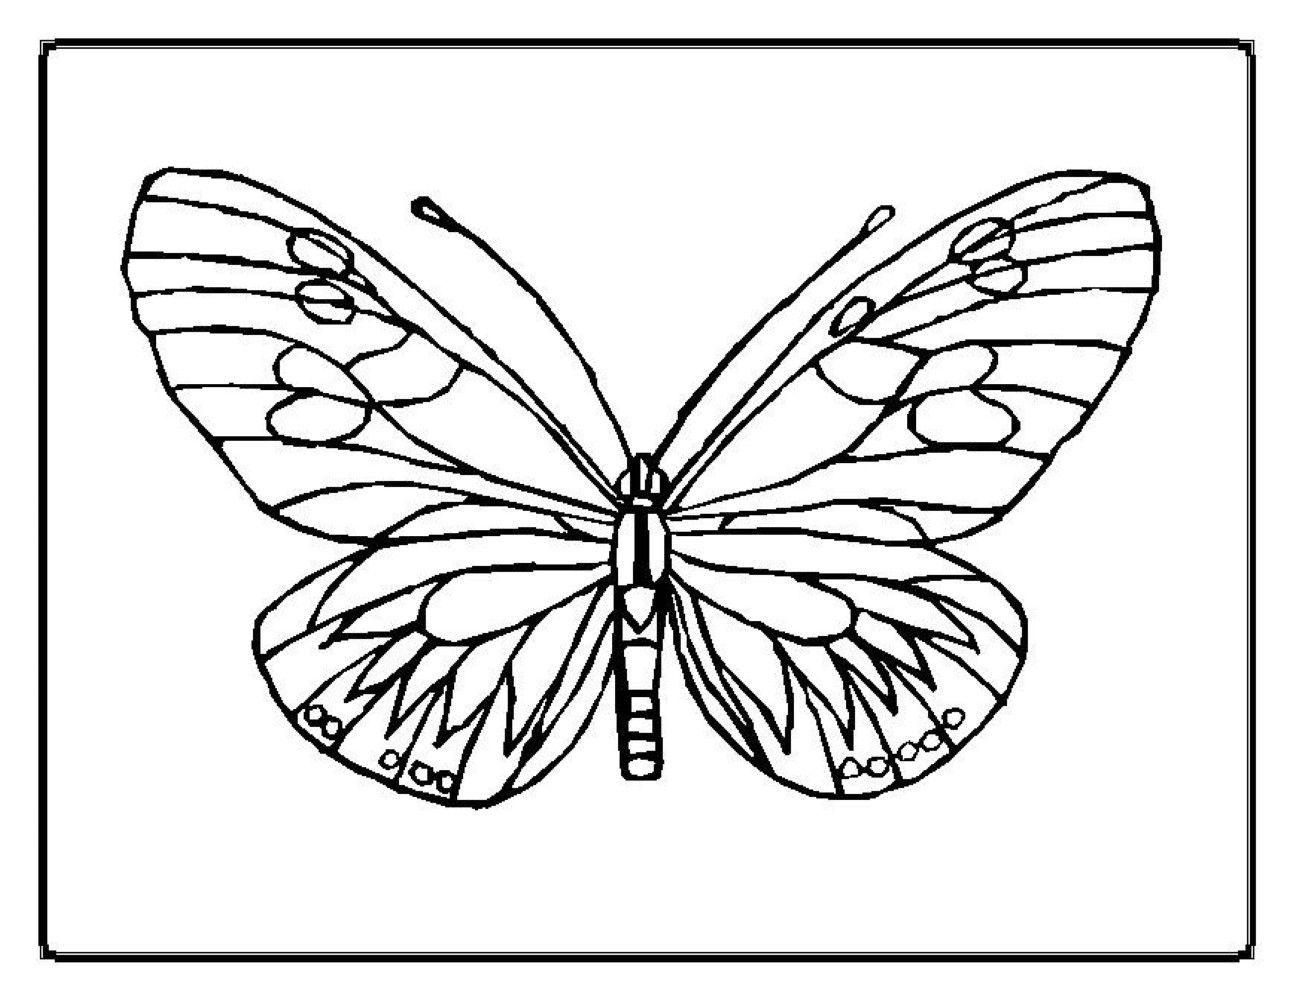 Butterfly-coloring-pages-07.jpg (1295×1000) | BUTTERFLIES AND MOTHS ...